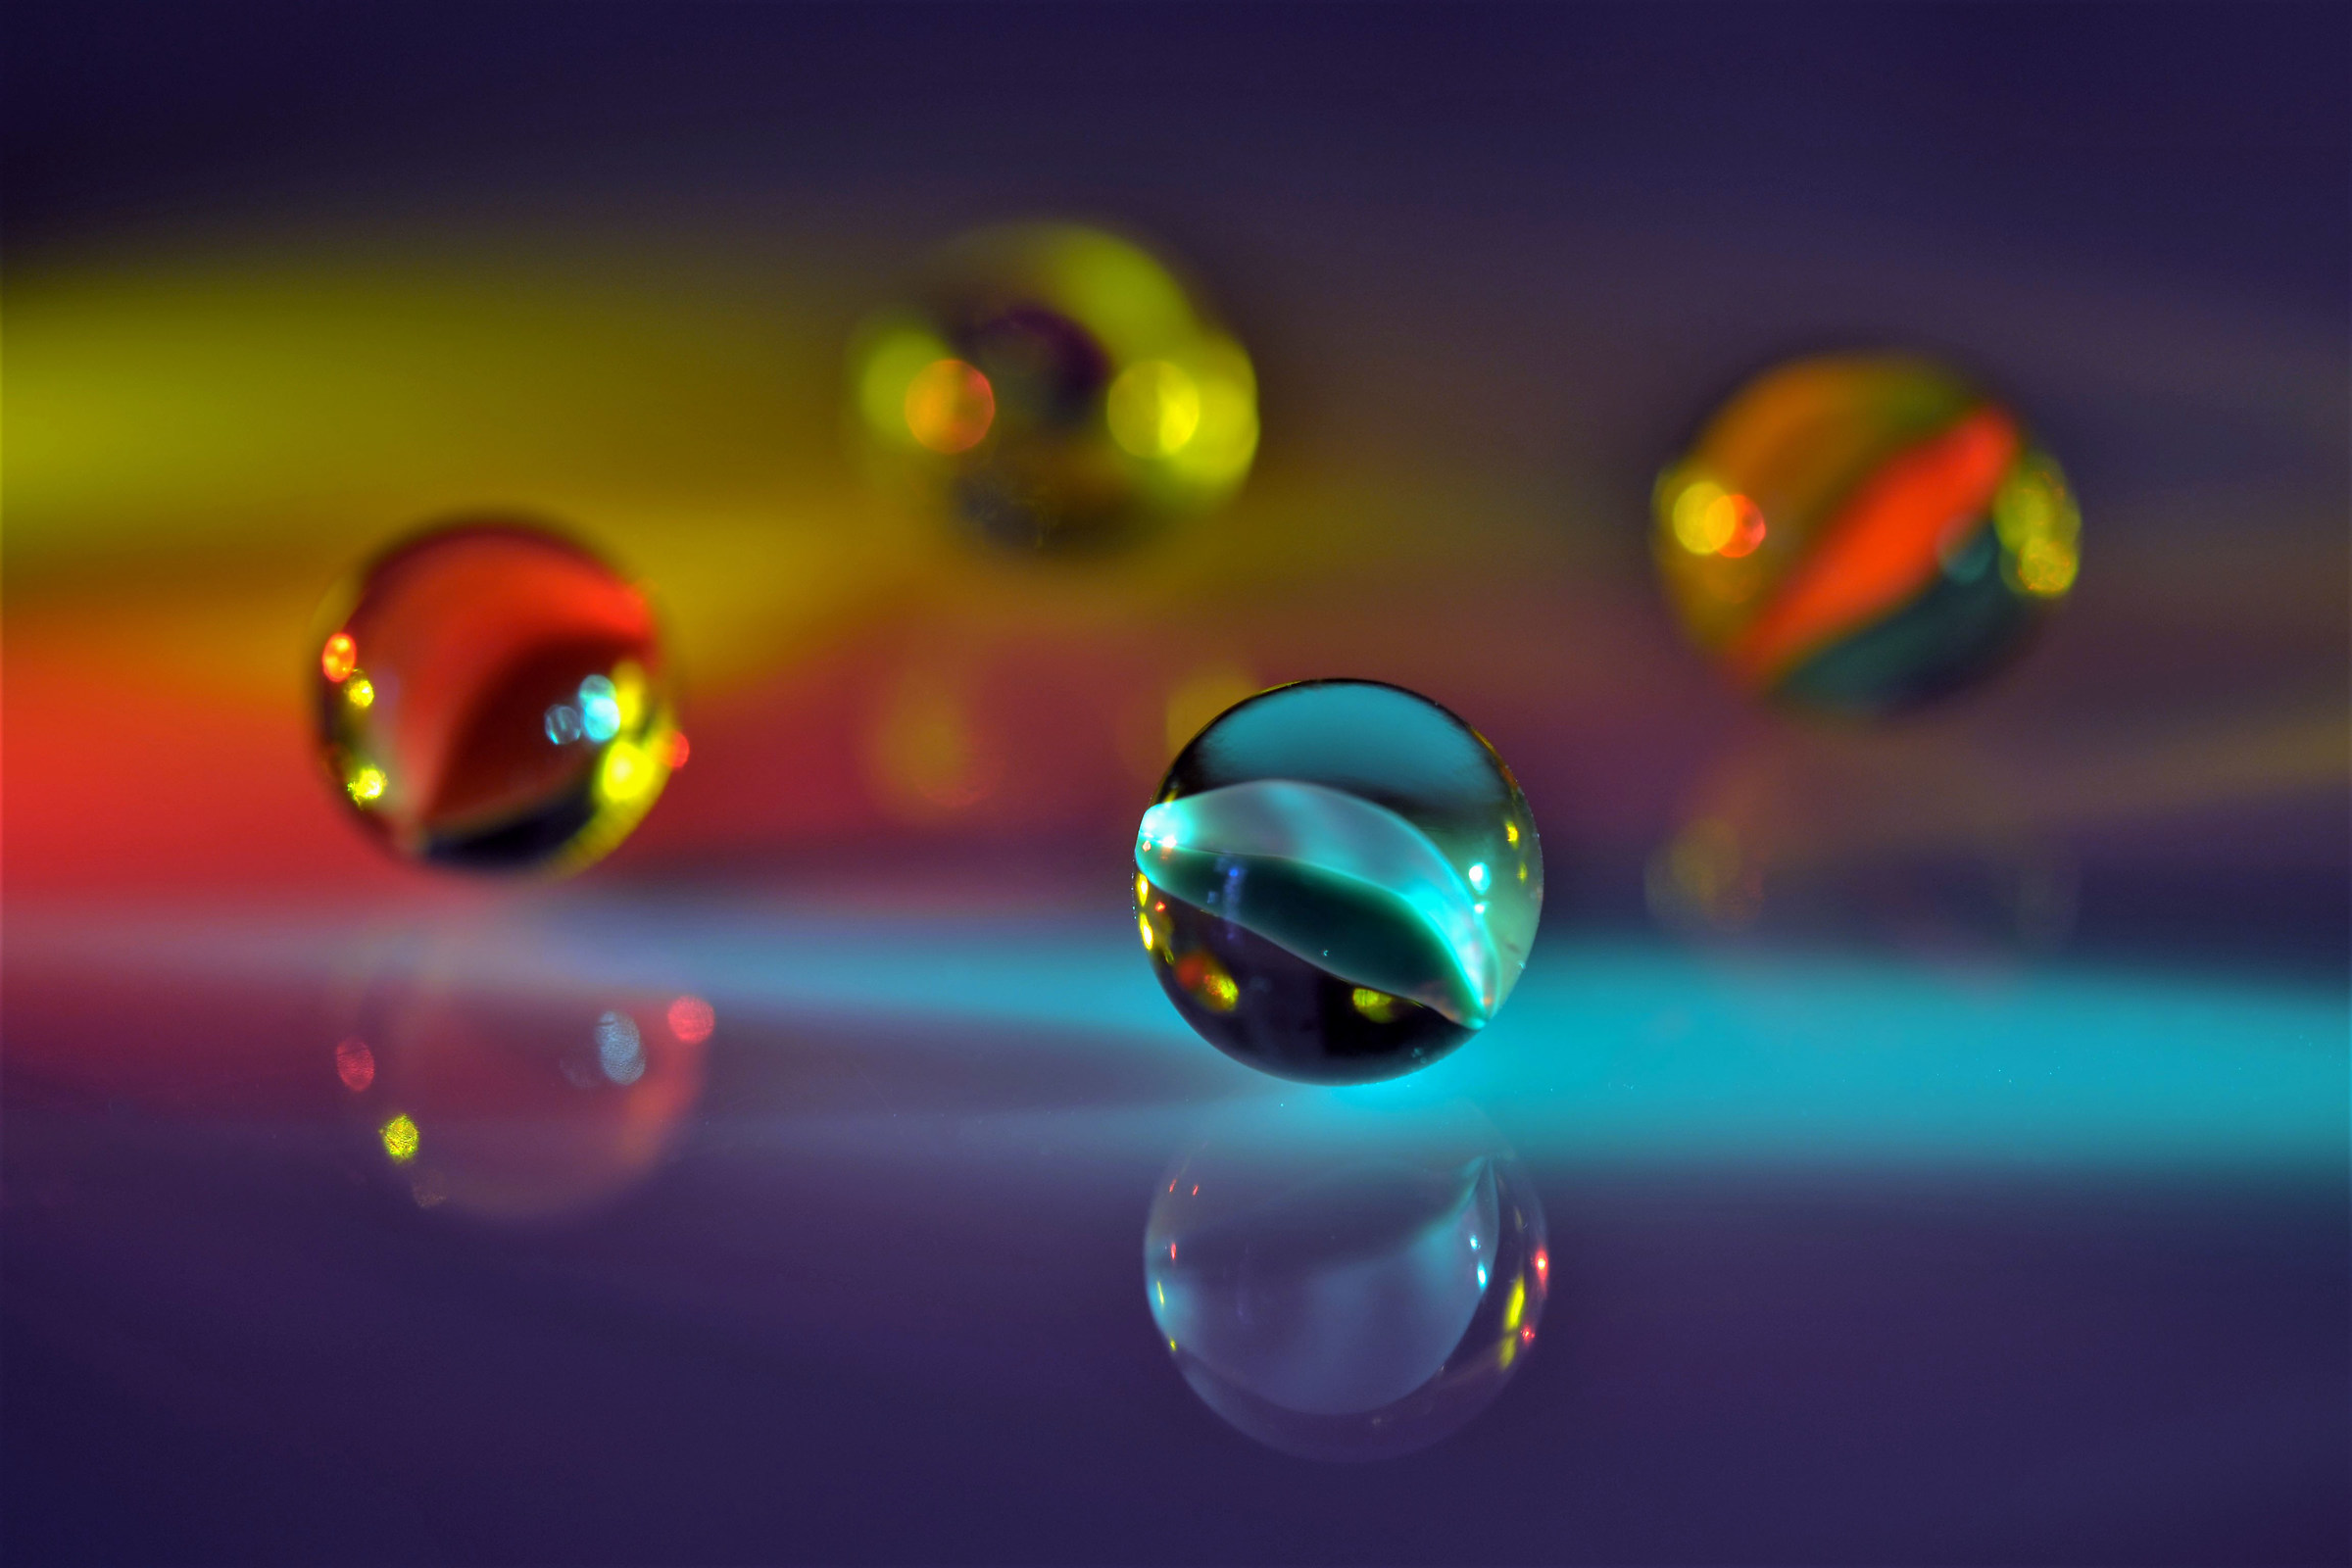 ... today I played with marbles...